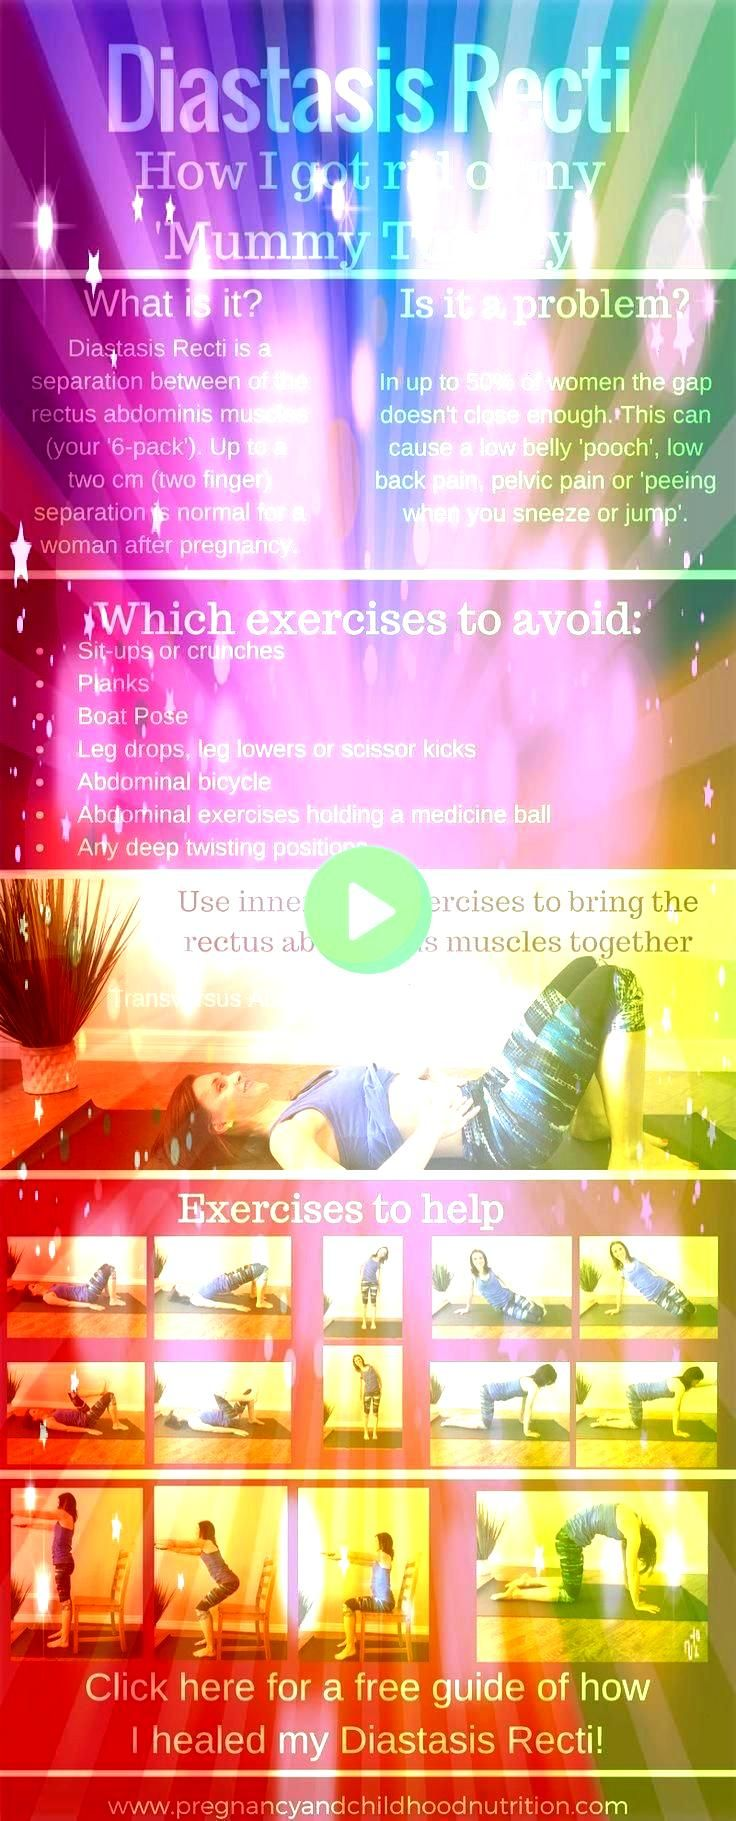 Ankle Weights once New Ab Workout Machine Core Exercises  Ab Exercises  Stomach Exercises With Ankle Weights once New Ab Workout Machine Core Exercises  Ab Exercises  Sto...